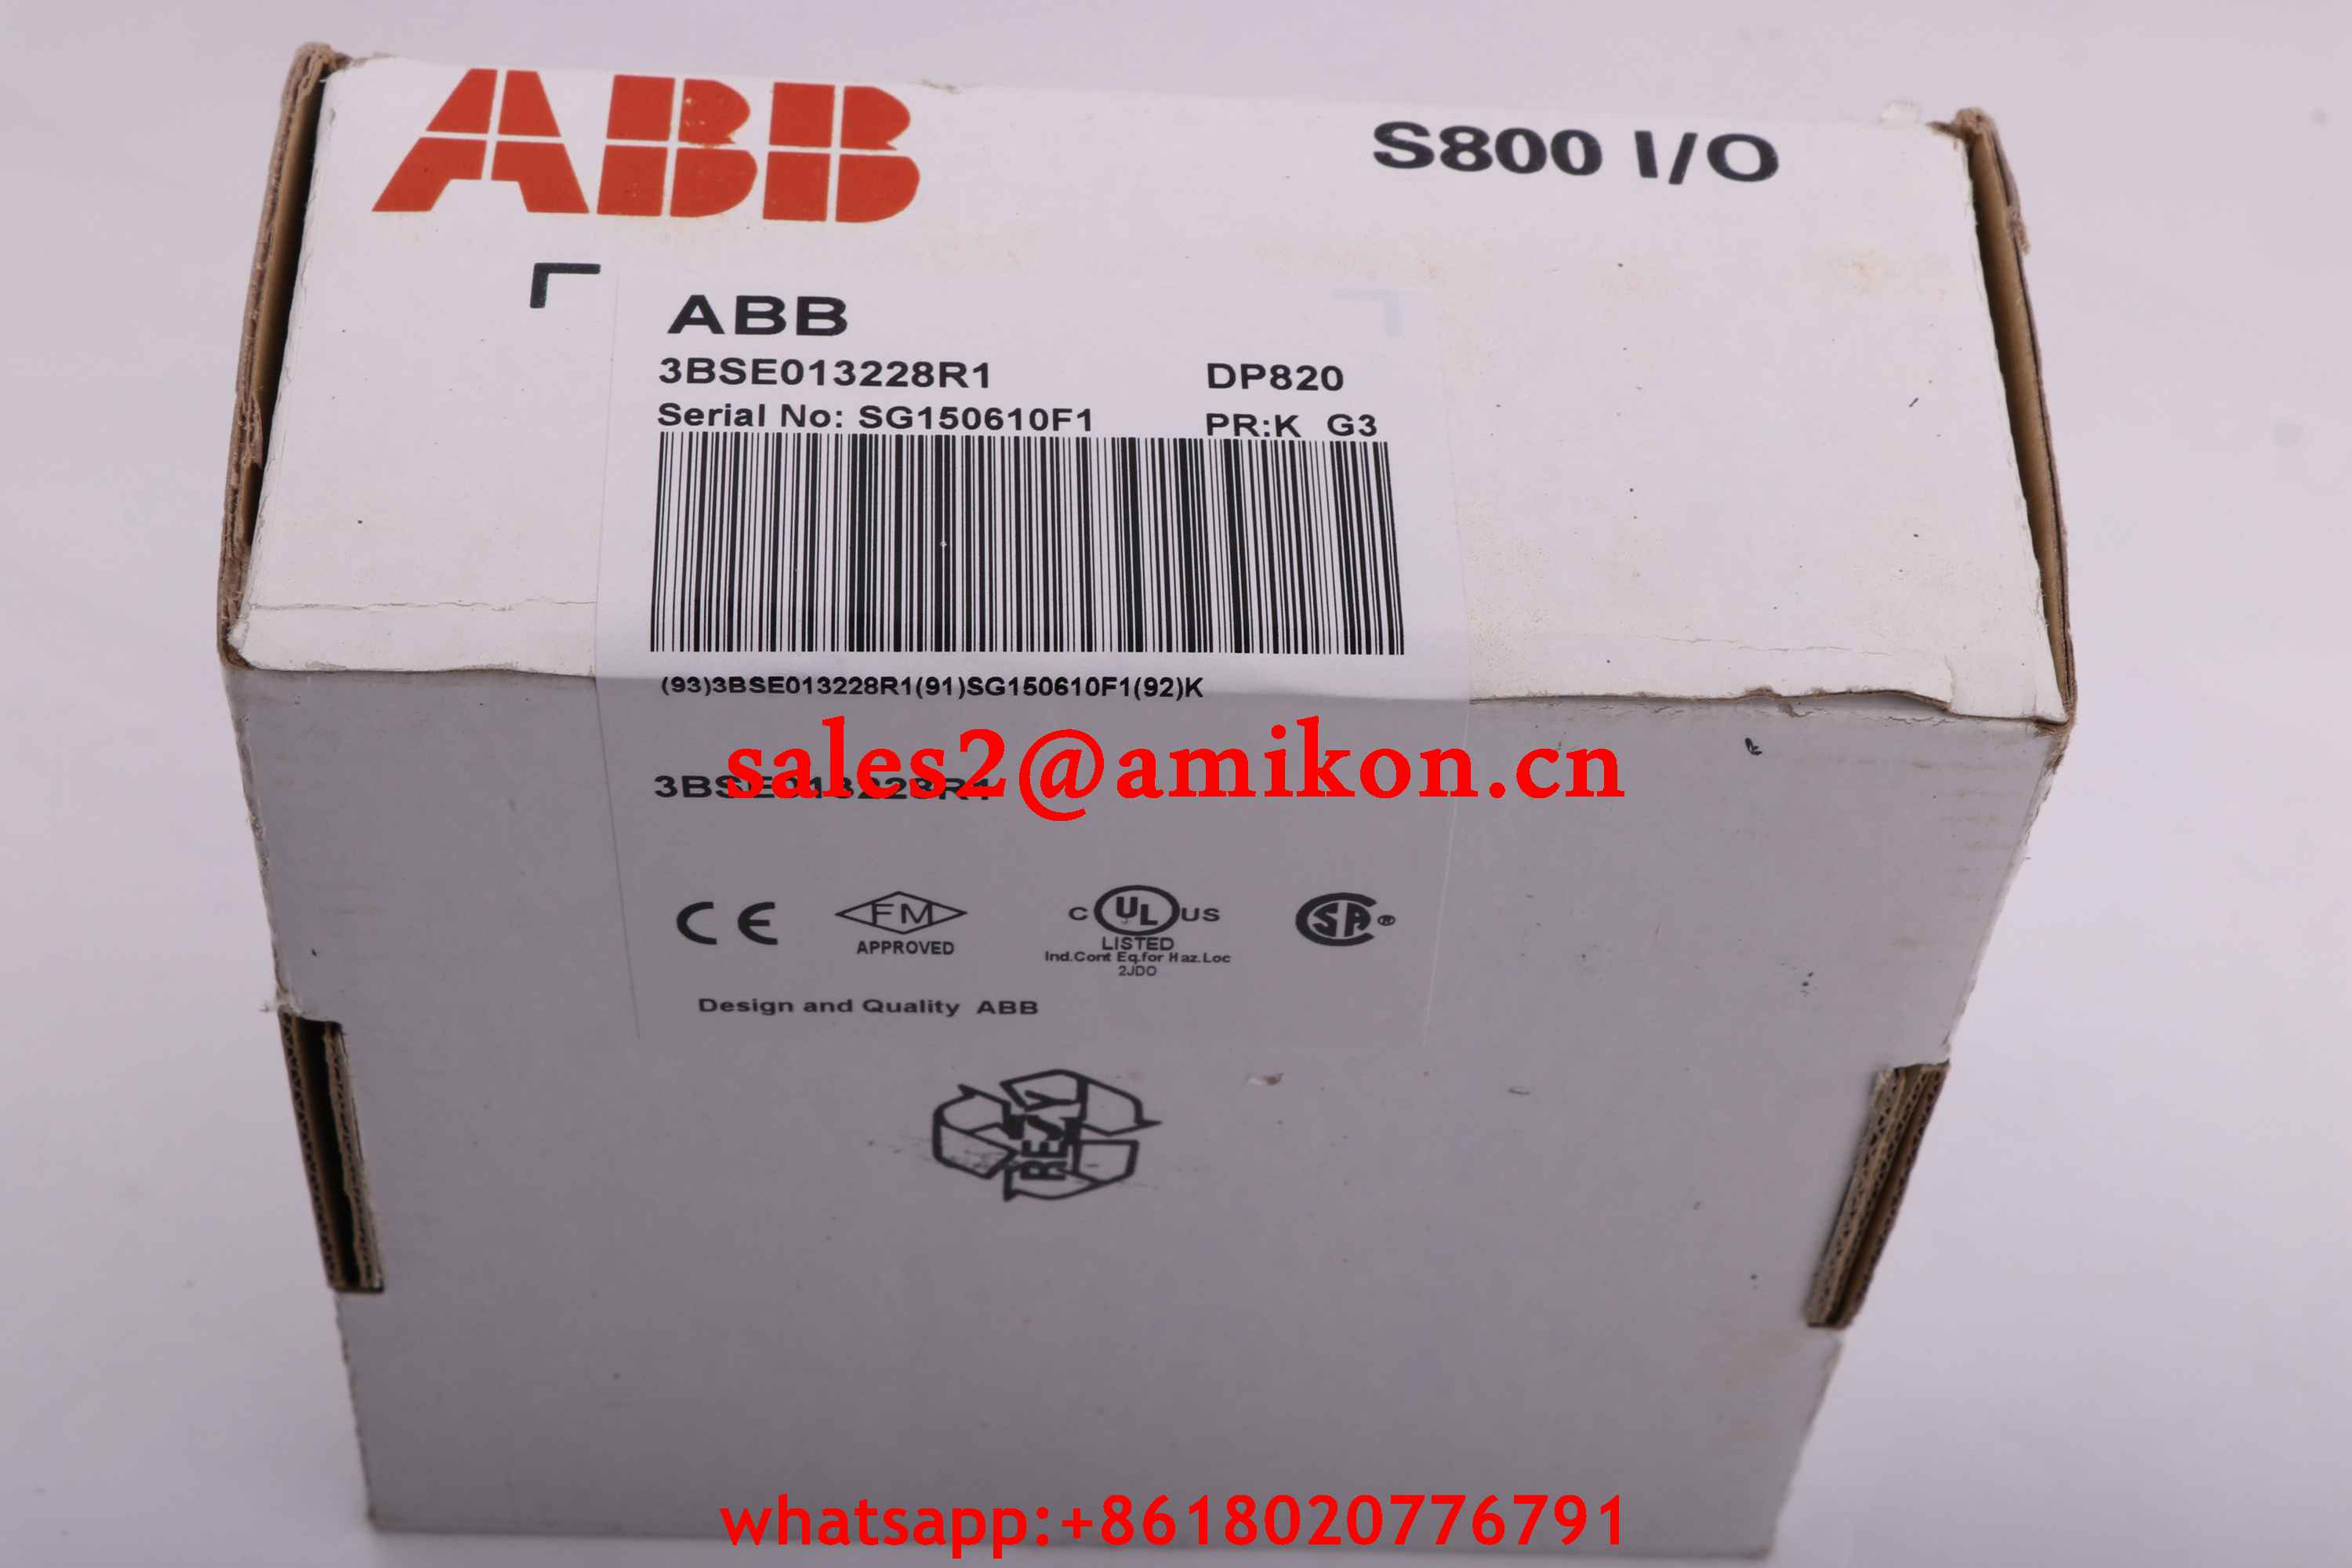 E3E 042816 DSQC 253 Exch. Serial mes. DSQC 253W ABB | Robot spare parts | PLC DCS Parts T/T 100% New In stock